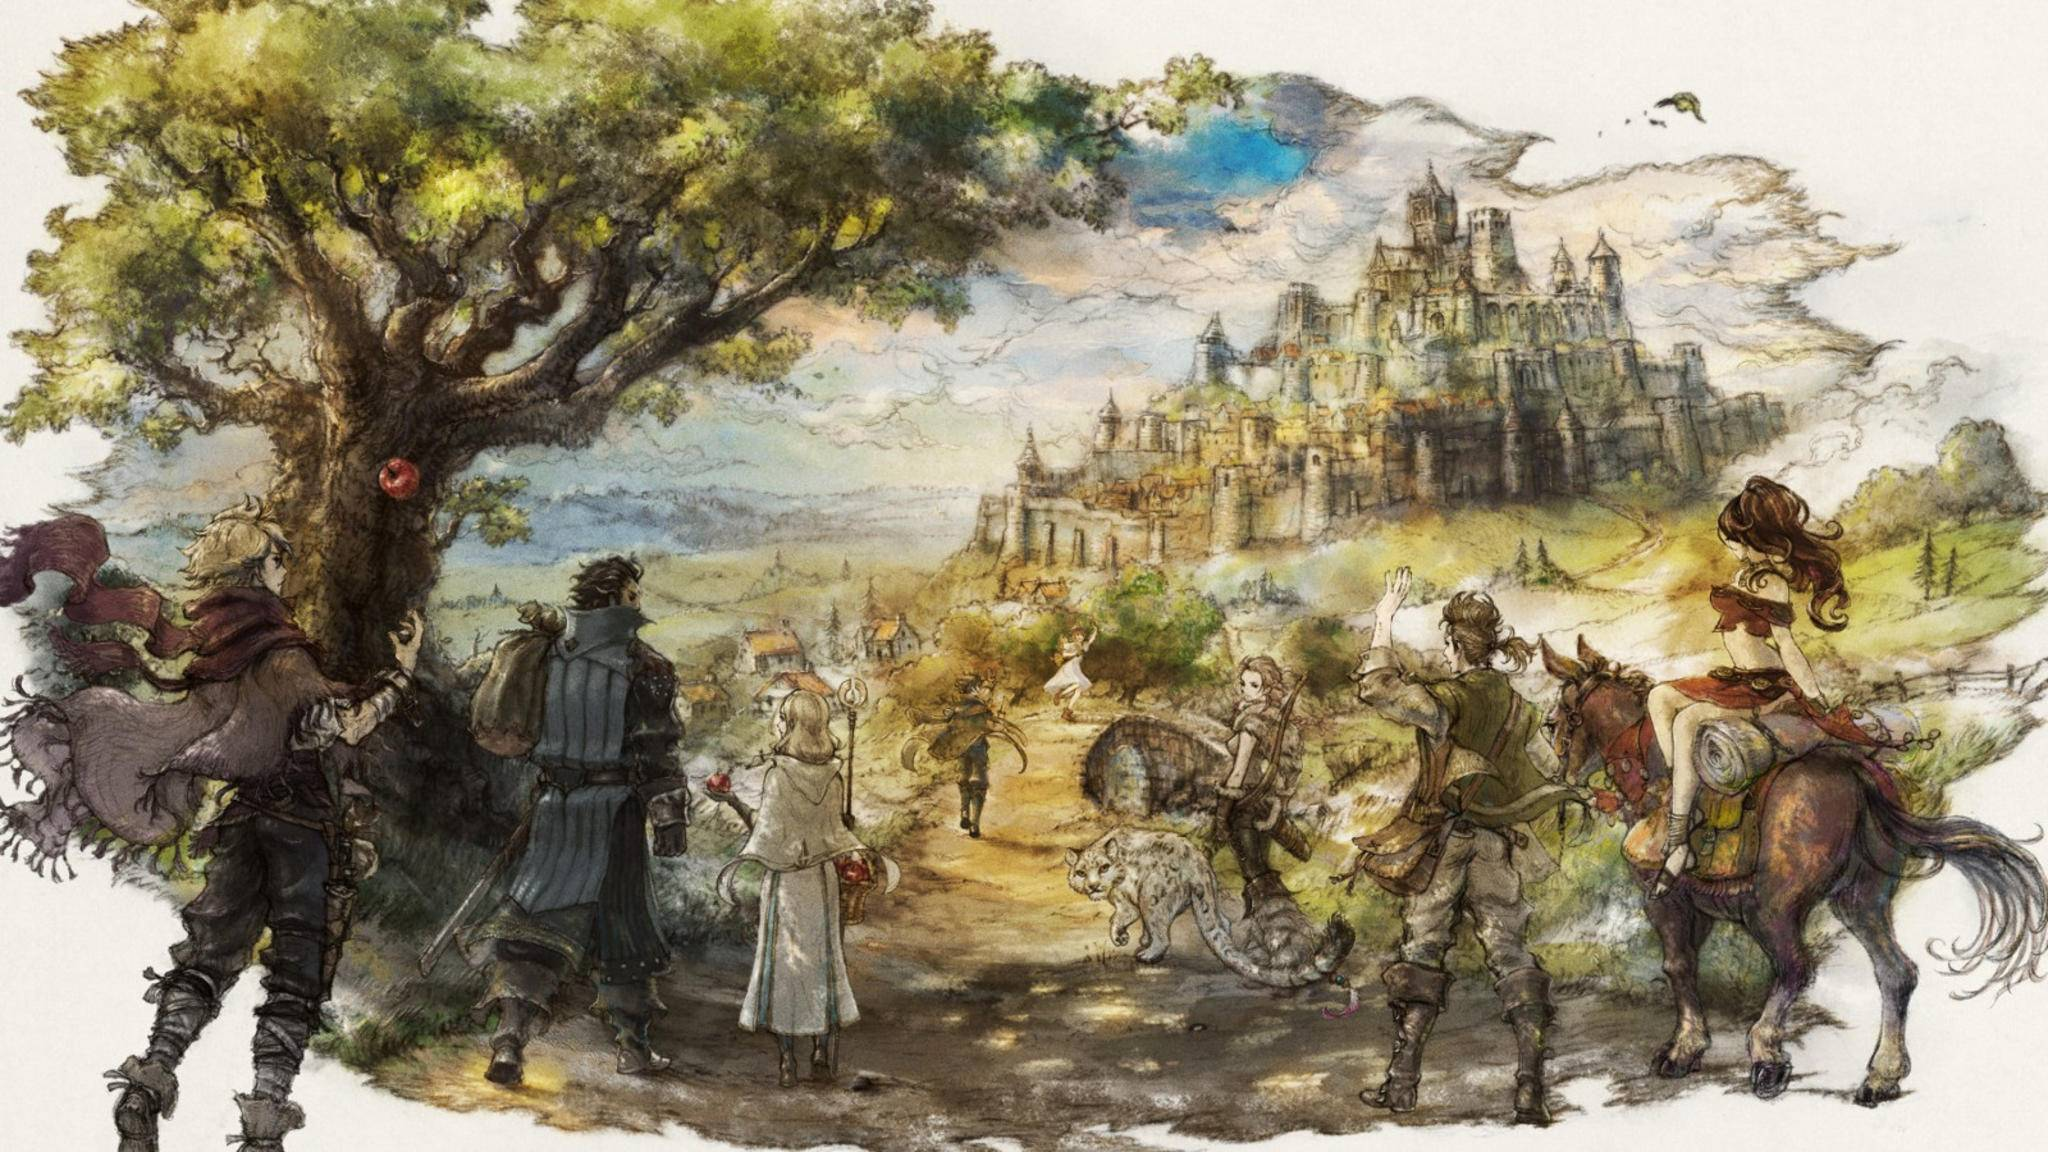 """Octopath Traveler"" bringt Retro-Flair auf die Switch."